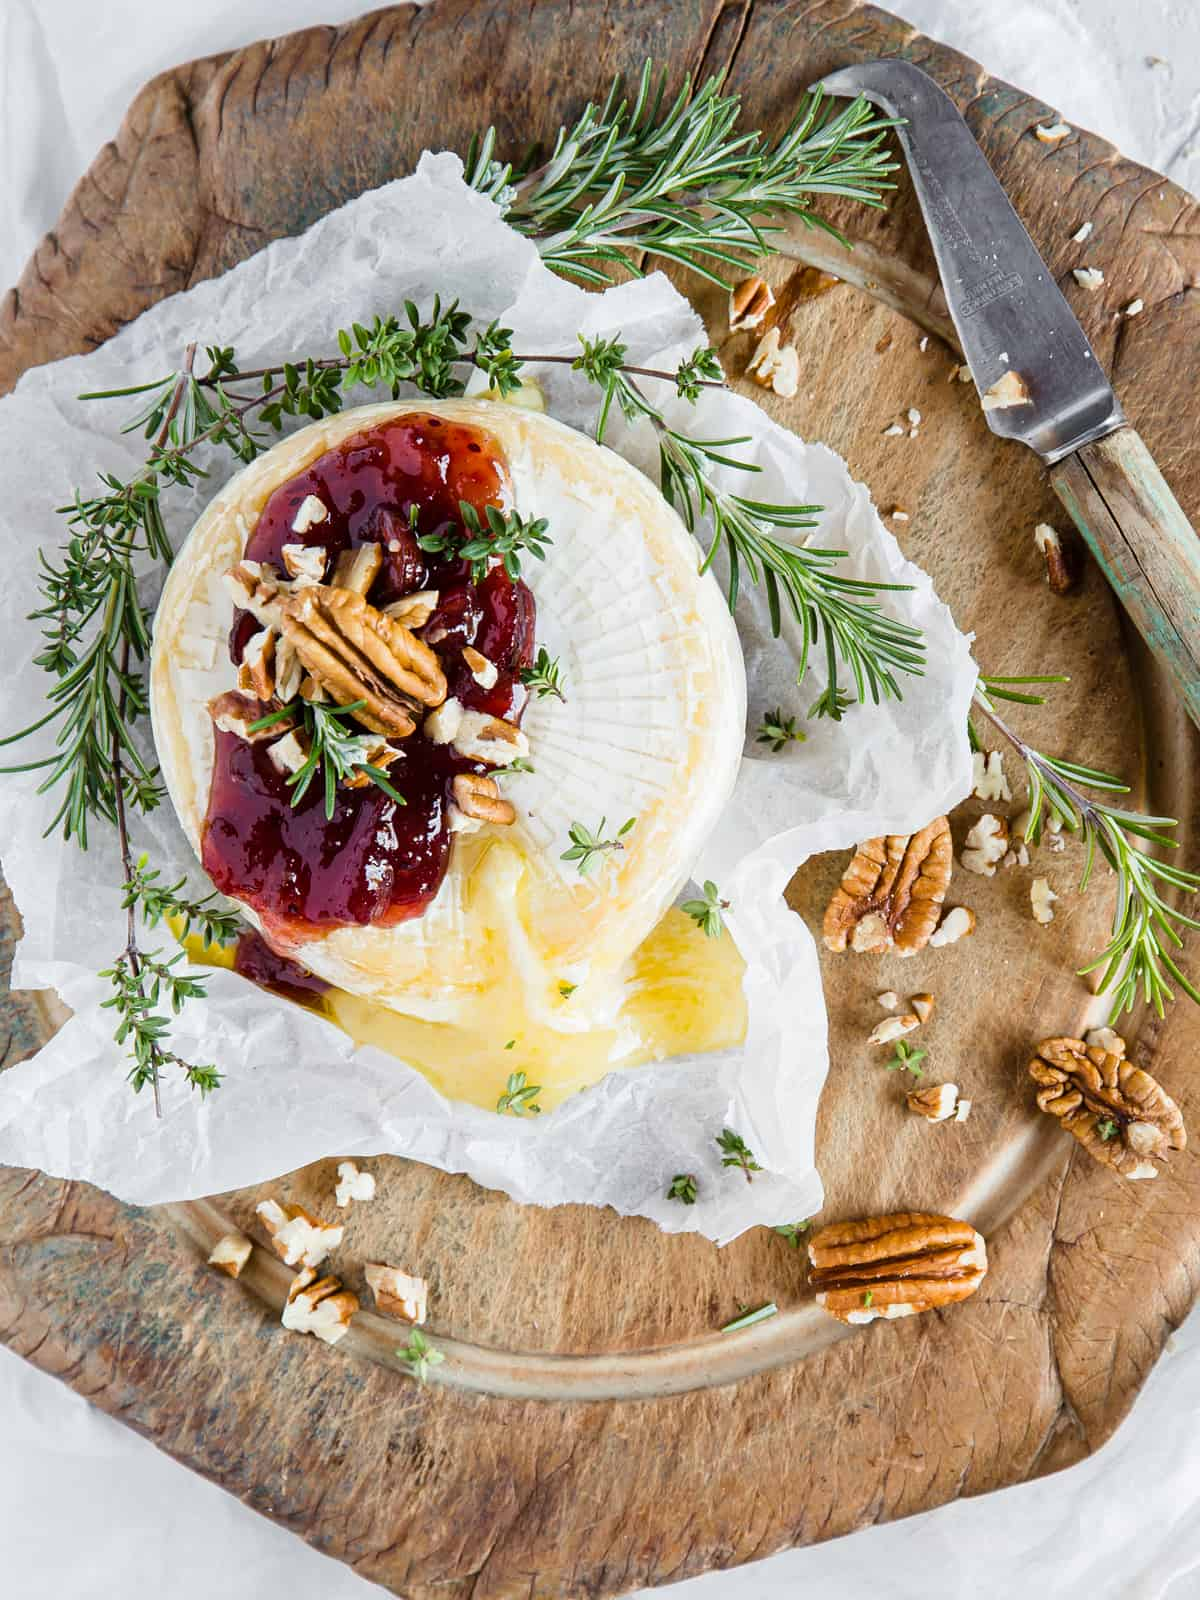 baked brie with cranberry sauce and pecans, garnished with fresh herbs and served with crackers